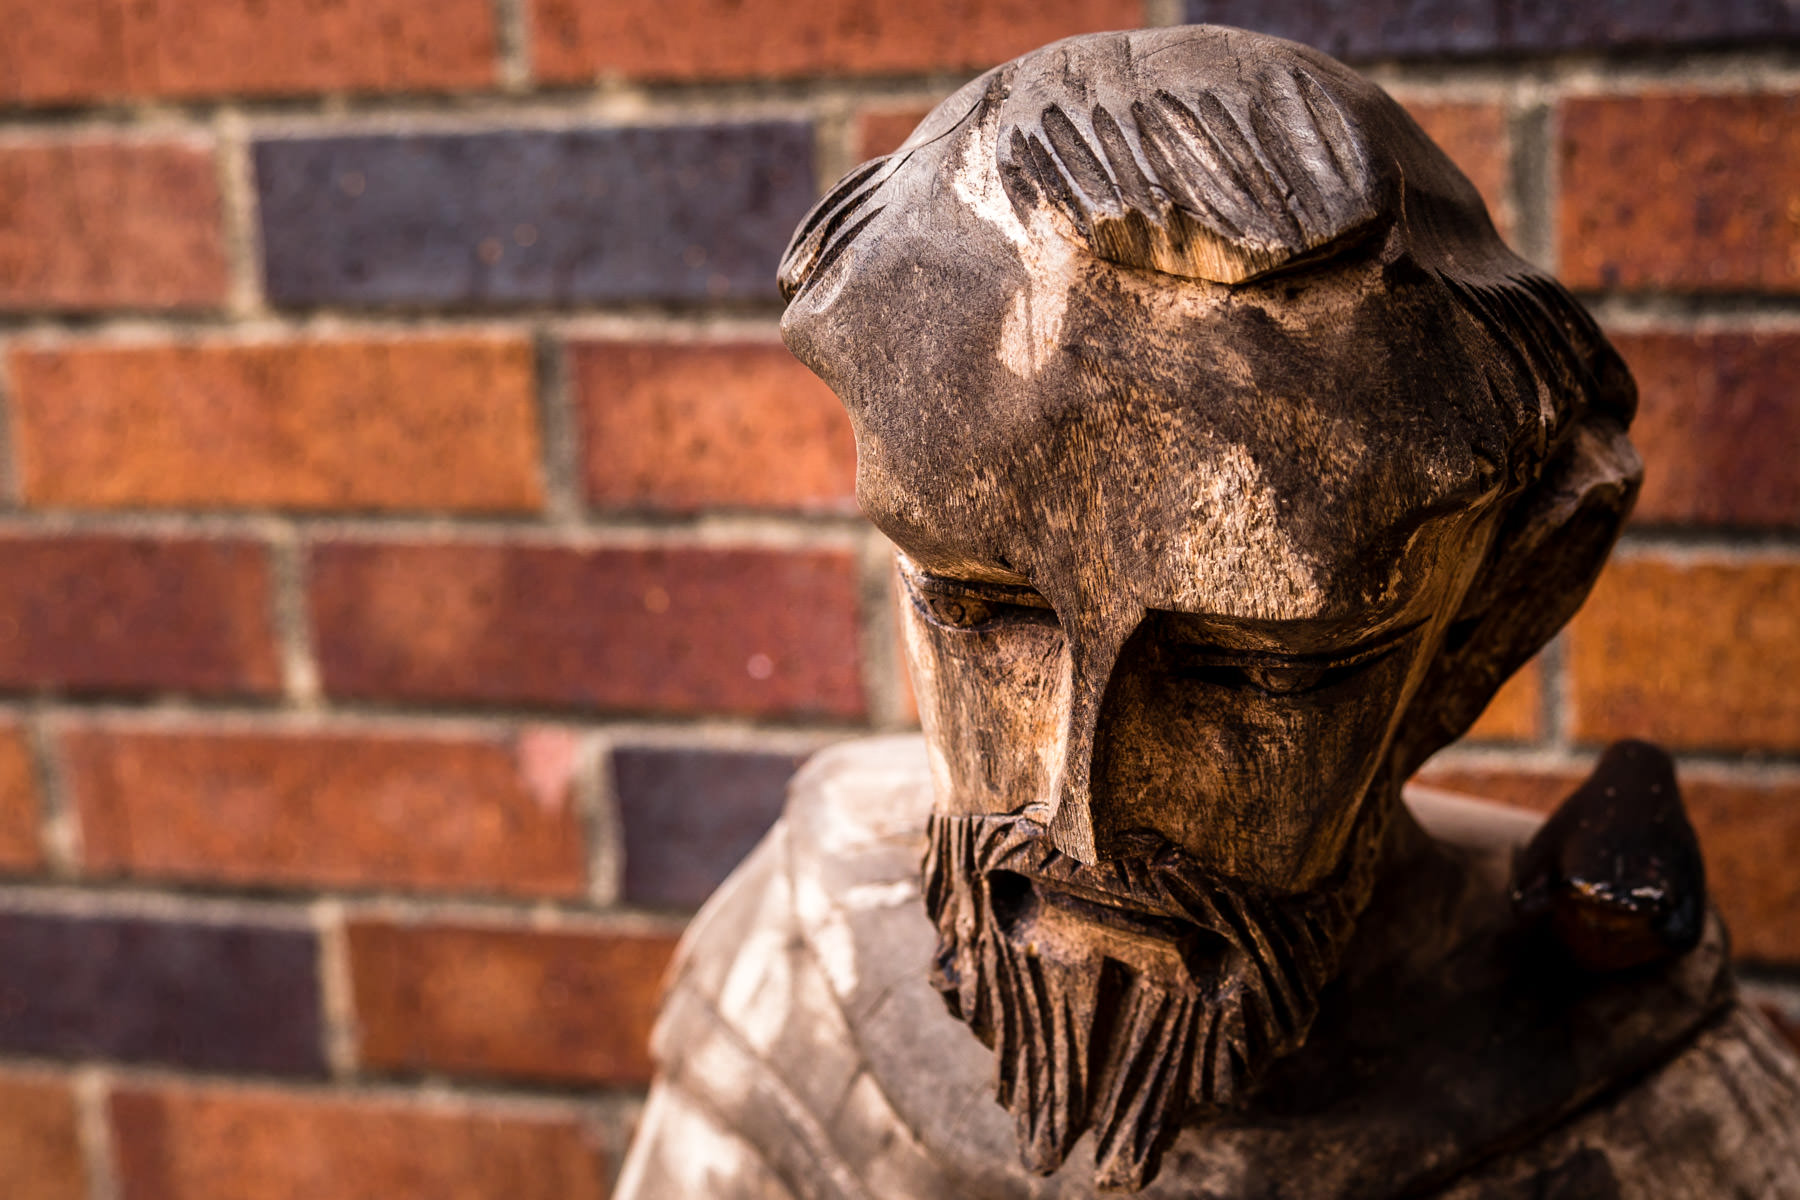 A coarsely-carved statue of Saint Francis of Assisi spotted outside a shop in Downtown Grapevine, Texas.